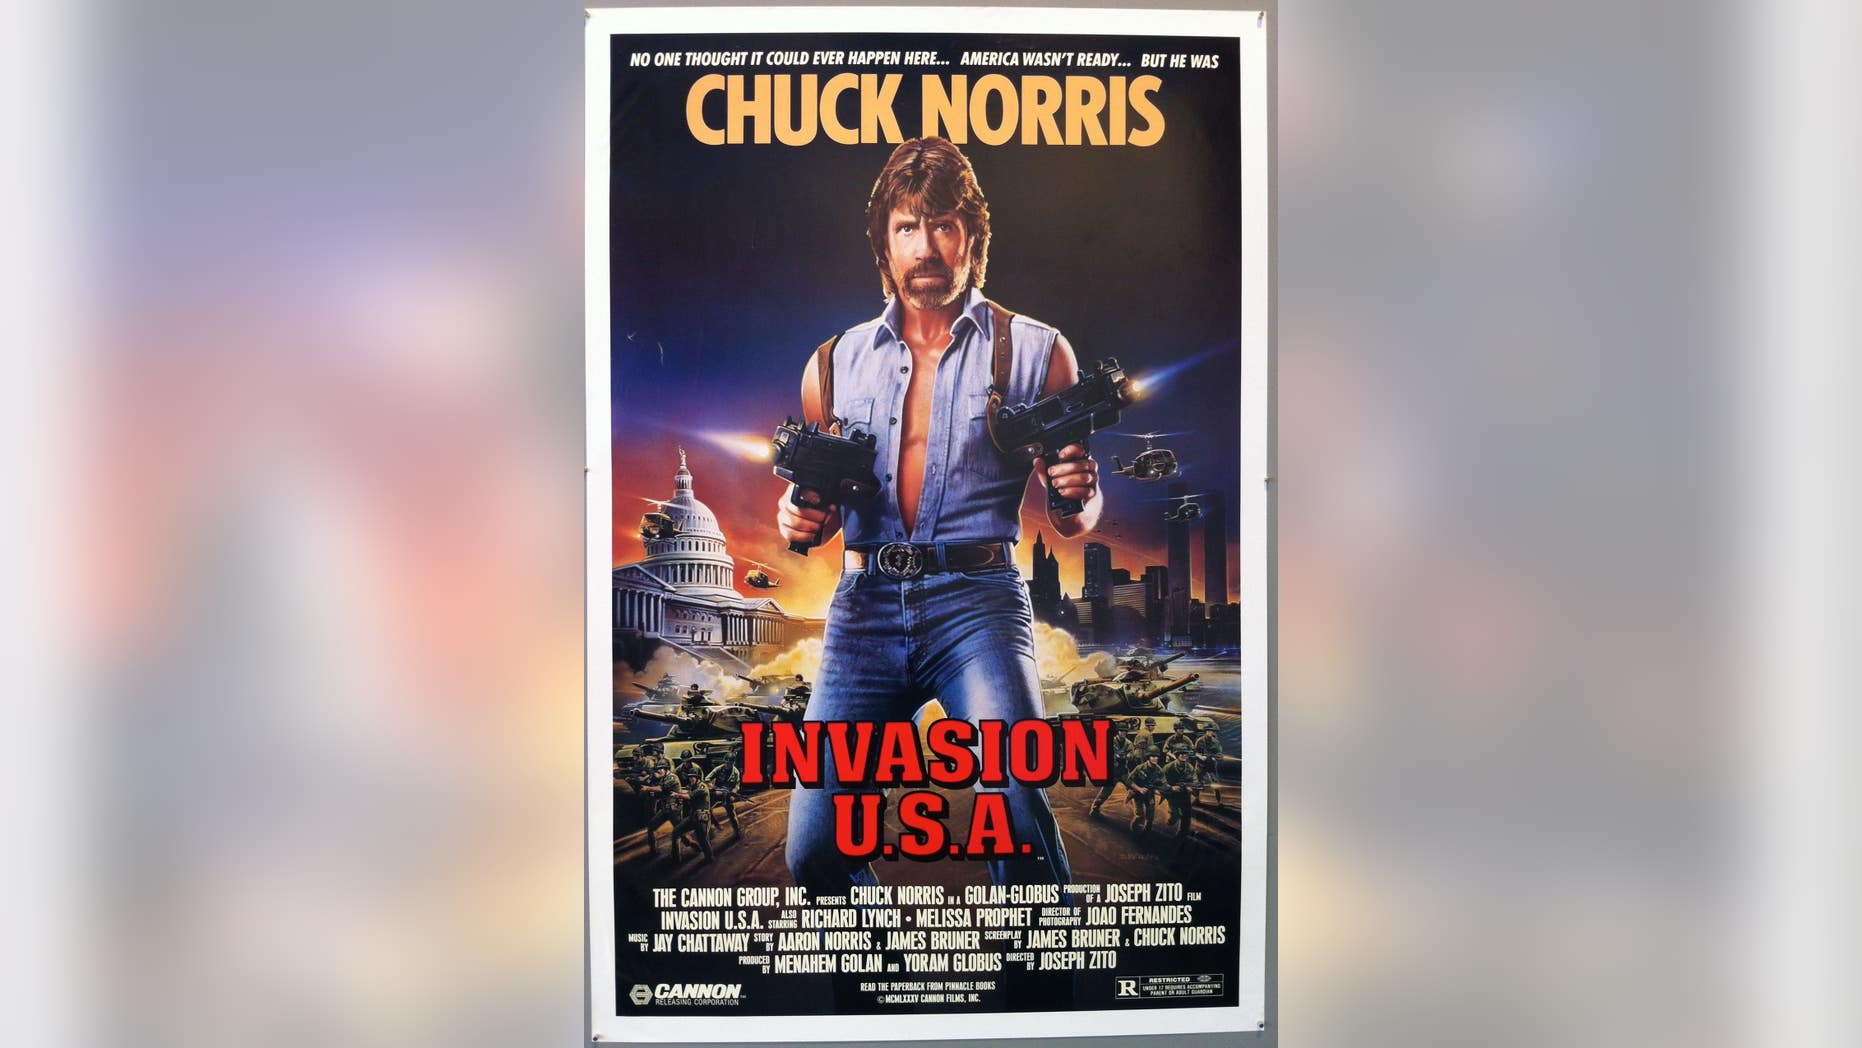 A professor said the photo of Chuck Norris undermined the public trust.